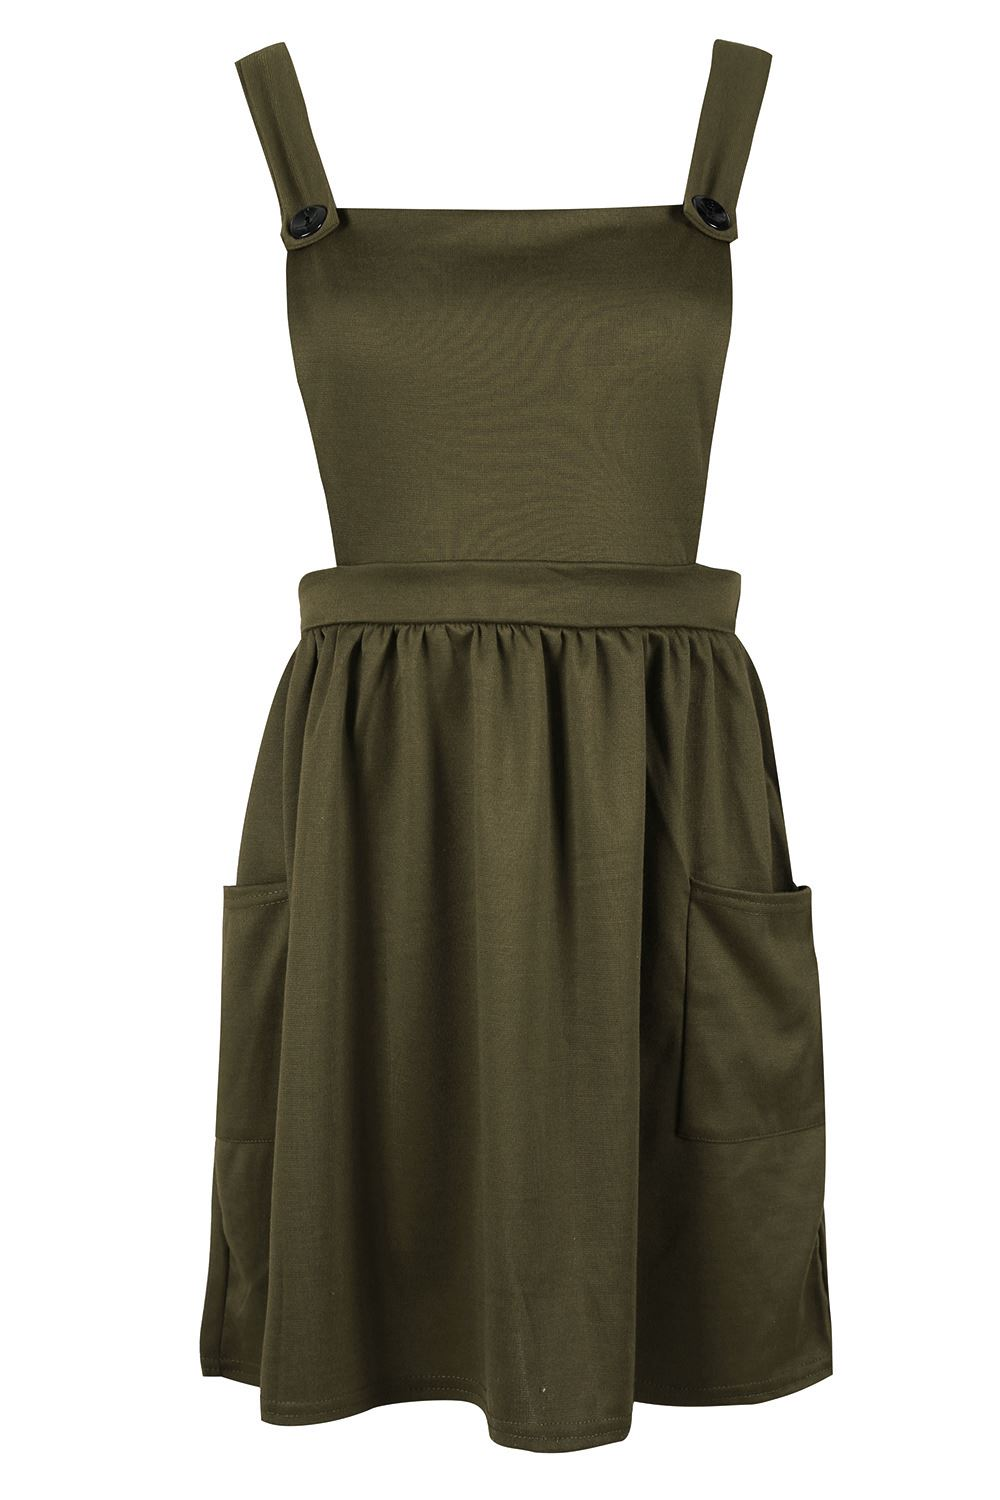 Womens-Ladies-Dungarees-Pinafore-Cross-Back-Strappy-Skater-Flared-Dress-Playsuit thumbnail 8